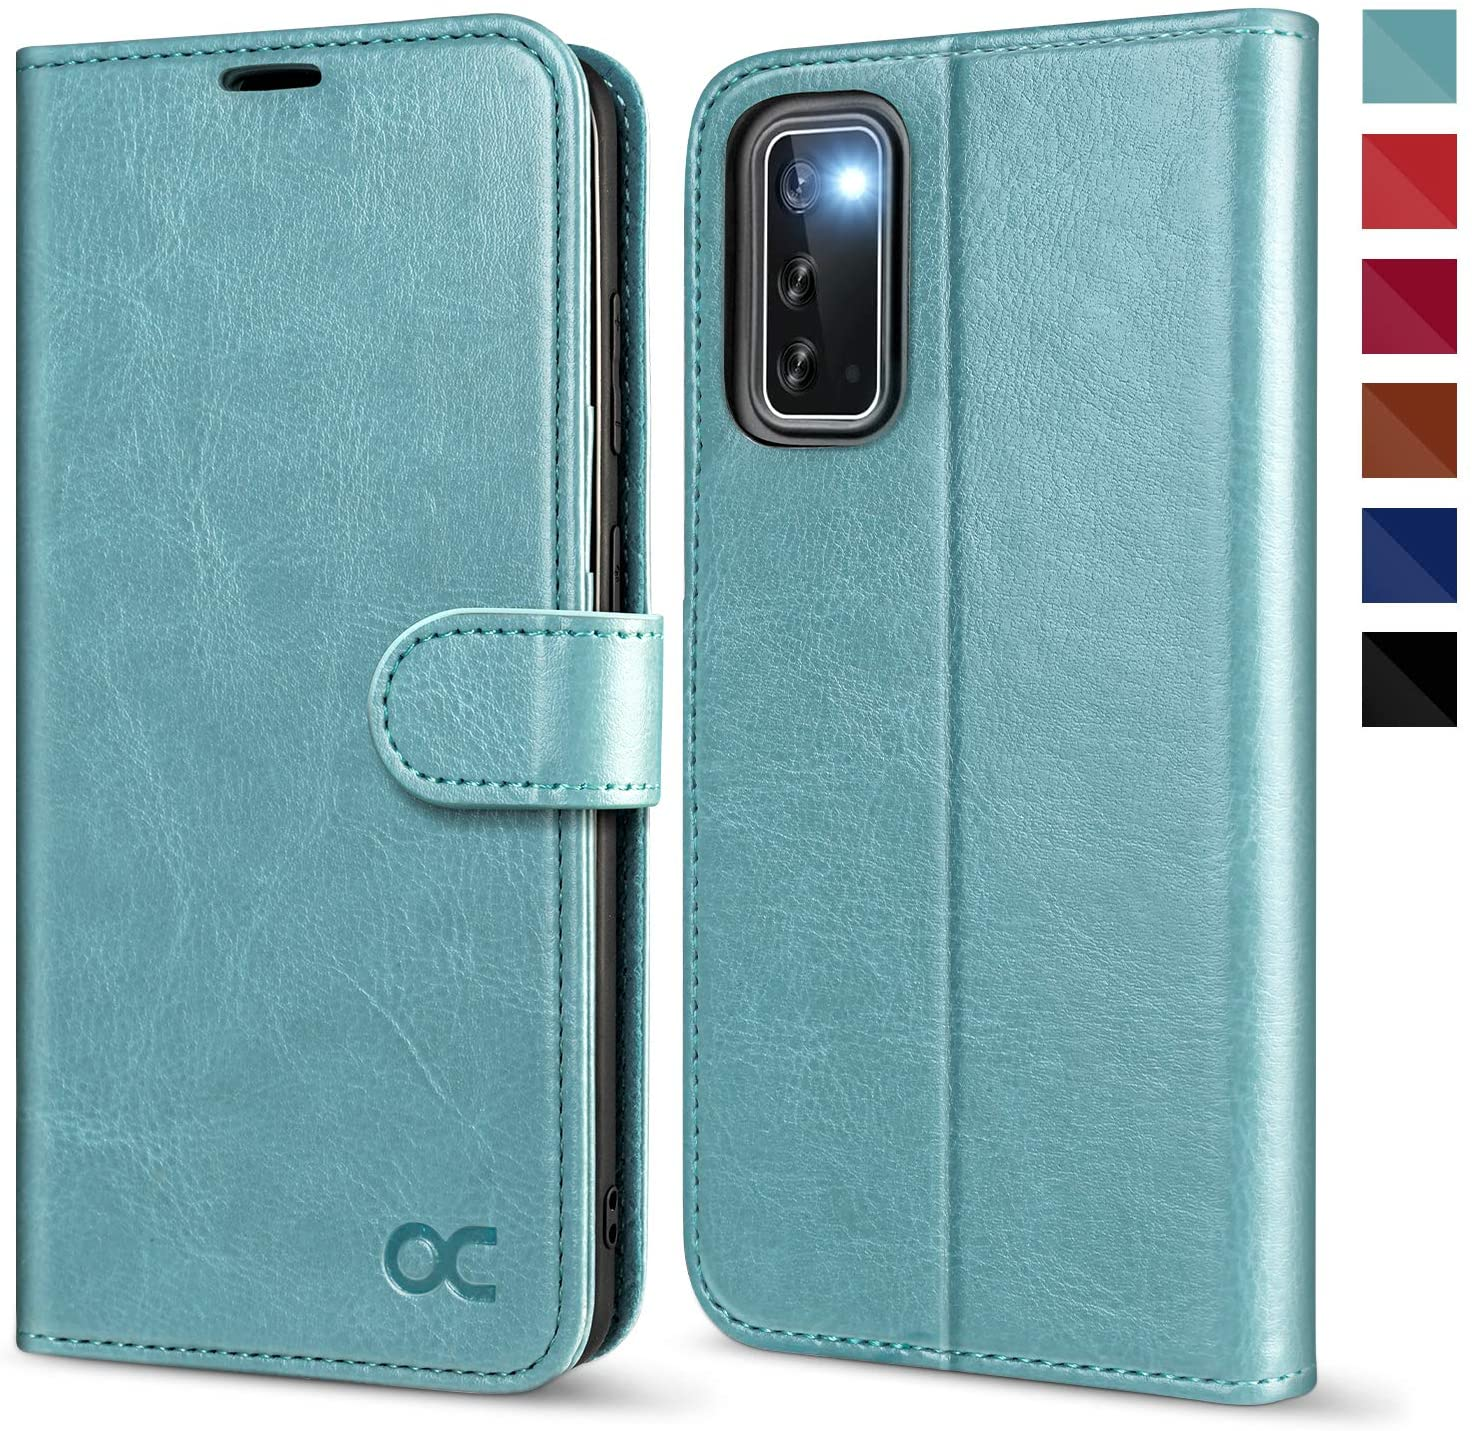 OCASE Galaxy S20 Case, Galaxy S20 Wallet Case, PU Leather Folio Flip Case with RFID Blocking Card Holders Kickstand Magnetic Closure, Shockproof Phone Cover for Samsung Galaxy S20 6.2 Inch-Mint Green